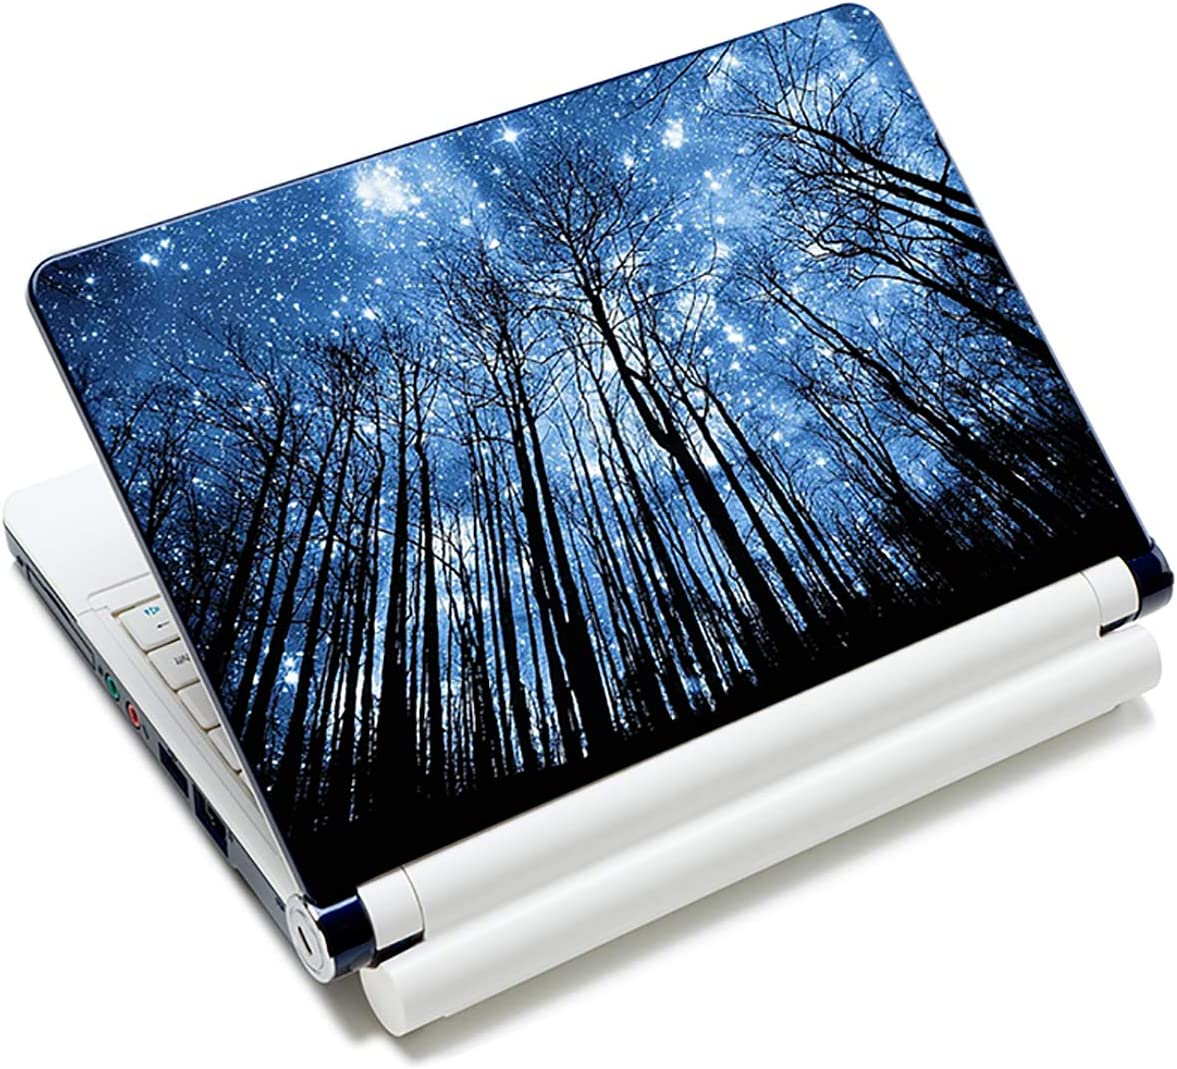 Universal 12.1 13 13.3 14 15 15.4 15.6 Inches Laptop Skin Sticker Decal Personalized Netbook Skin Sticker Reusable Notebook Art Decal Protector Cover Case by AORTDES - Forest at Peaceful Moonlight